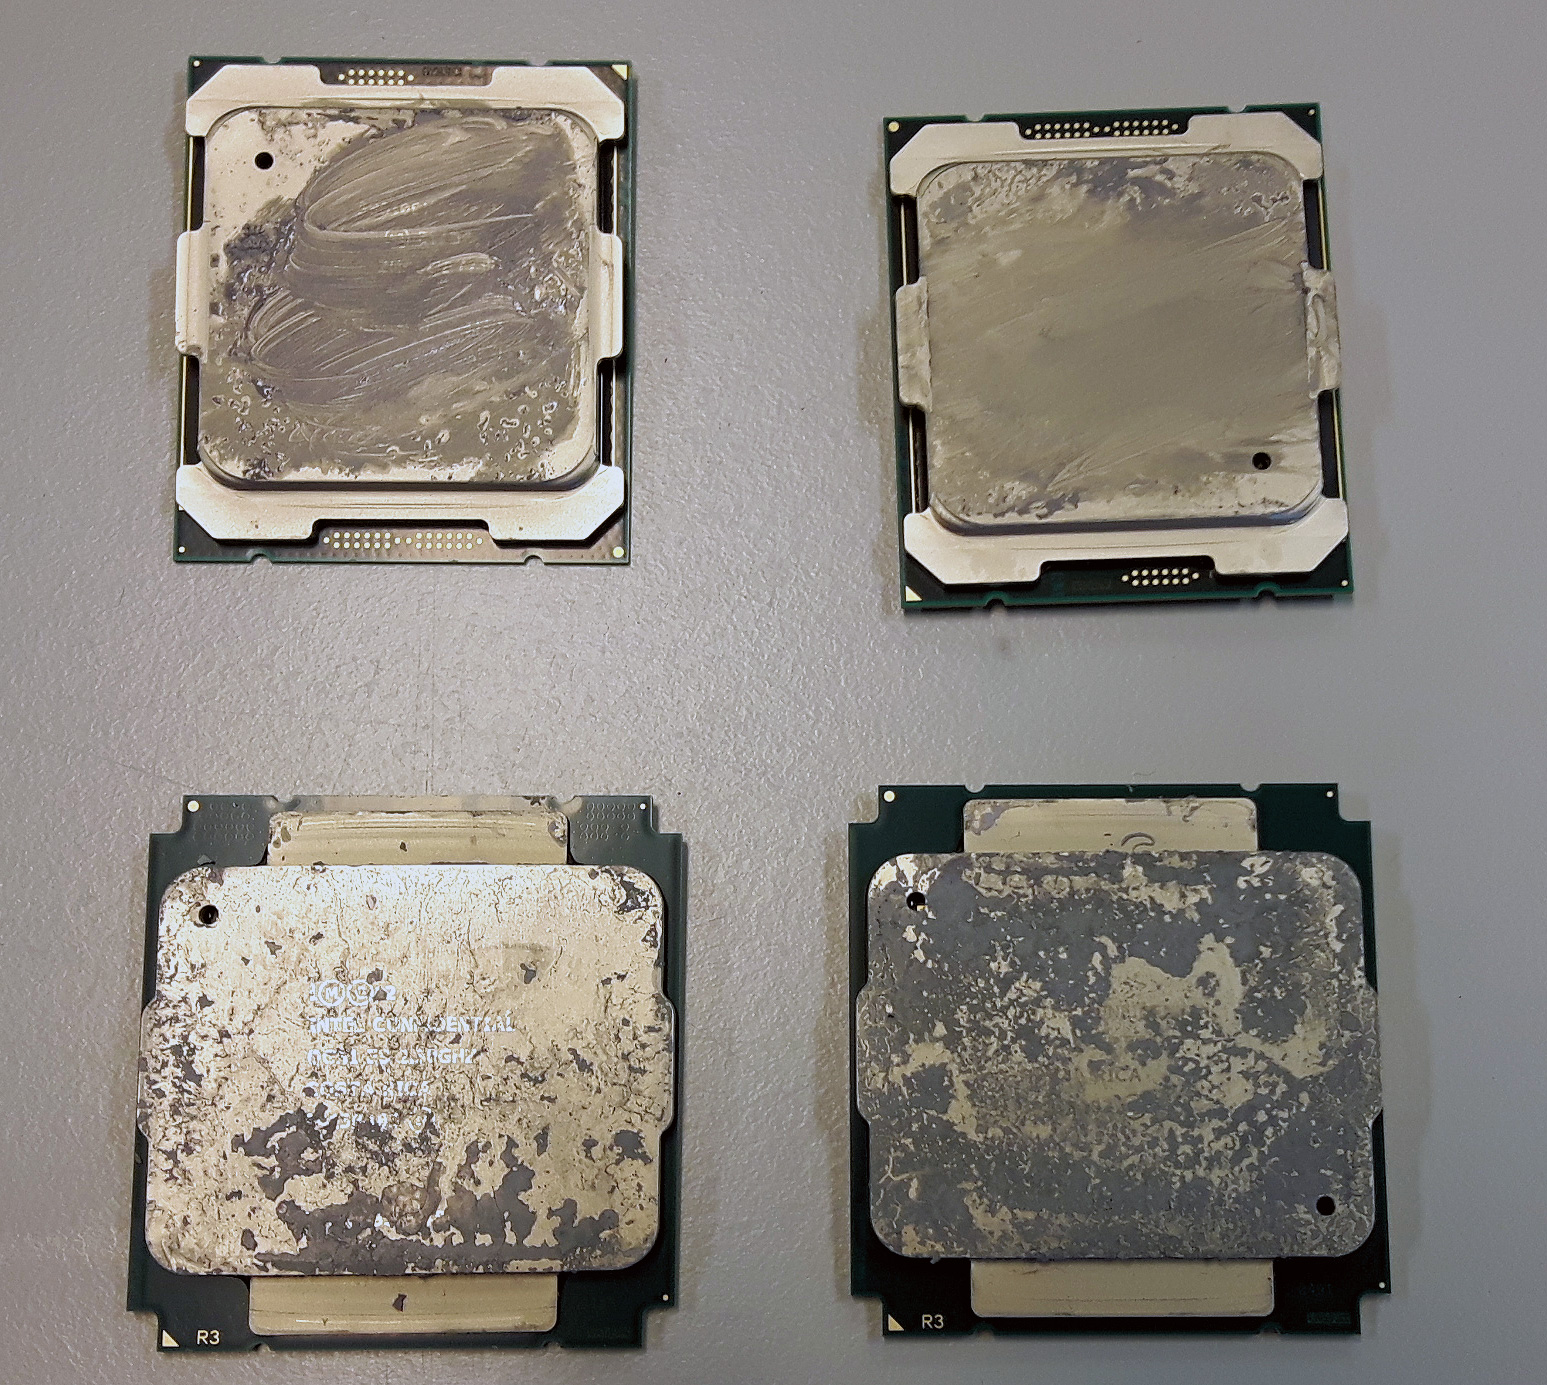 The Intel Xeon E5 v4 Review: Testing Broadwell-EP With